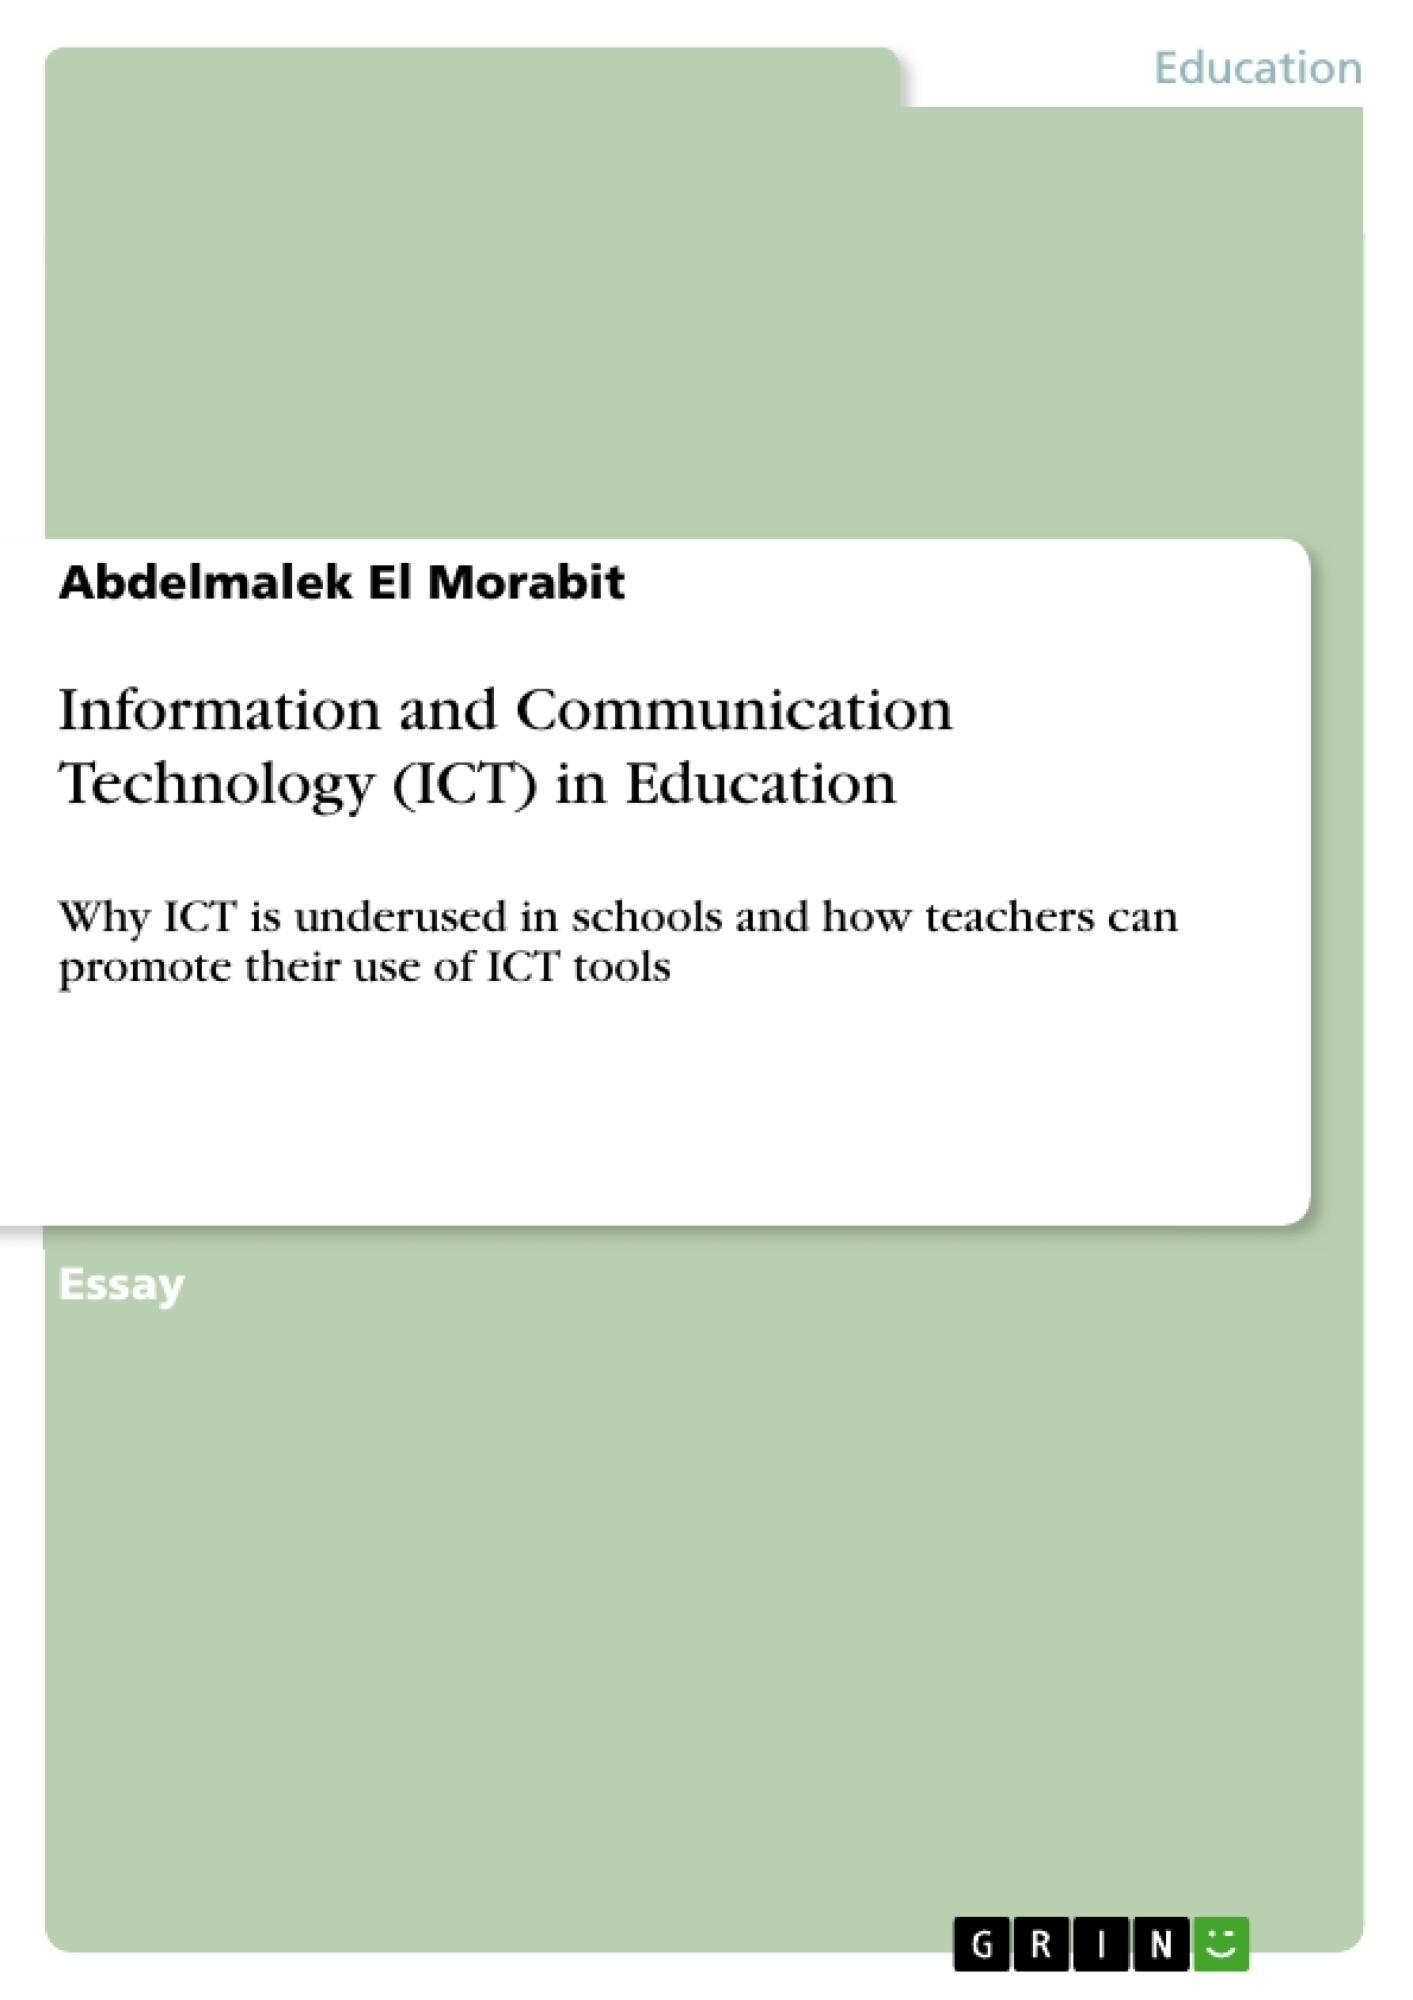 Title: Information and Communication Technology (ICT) in Education